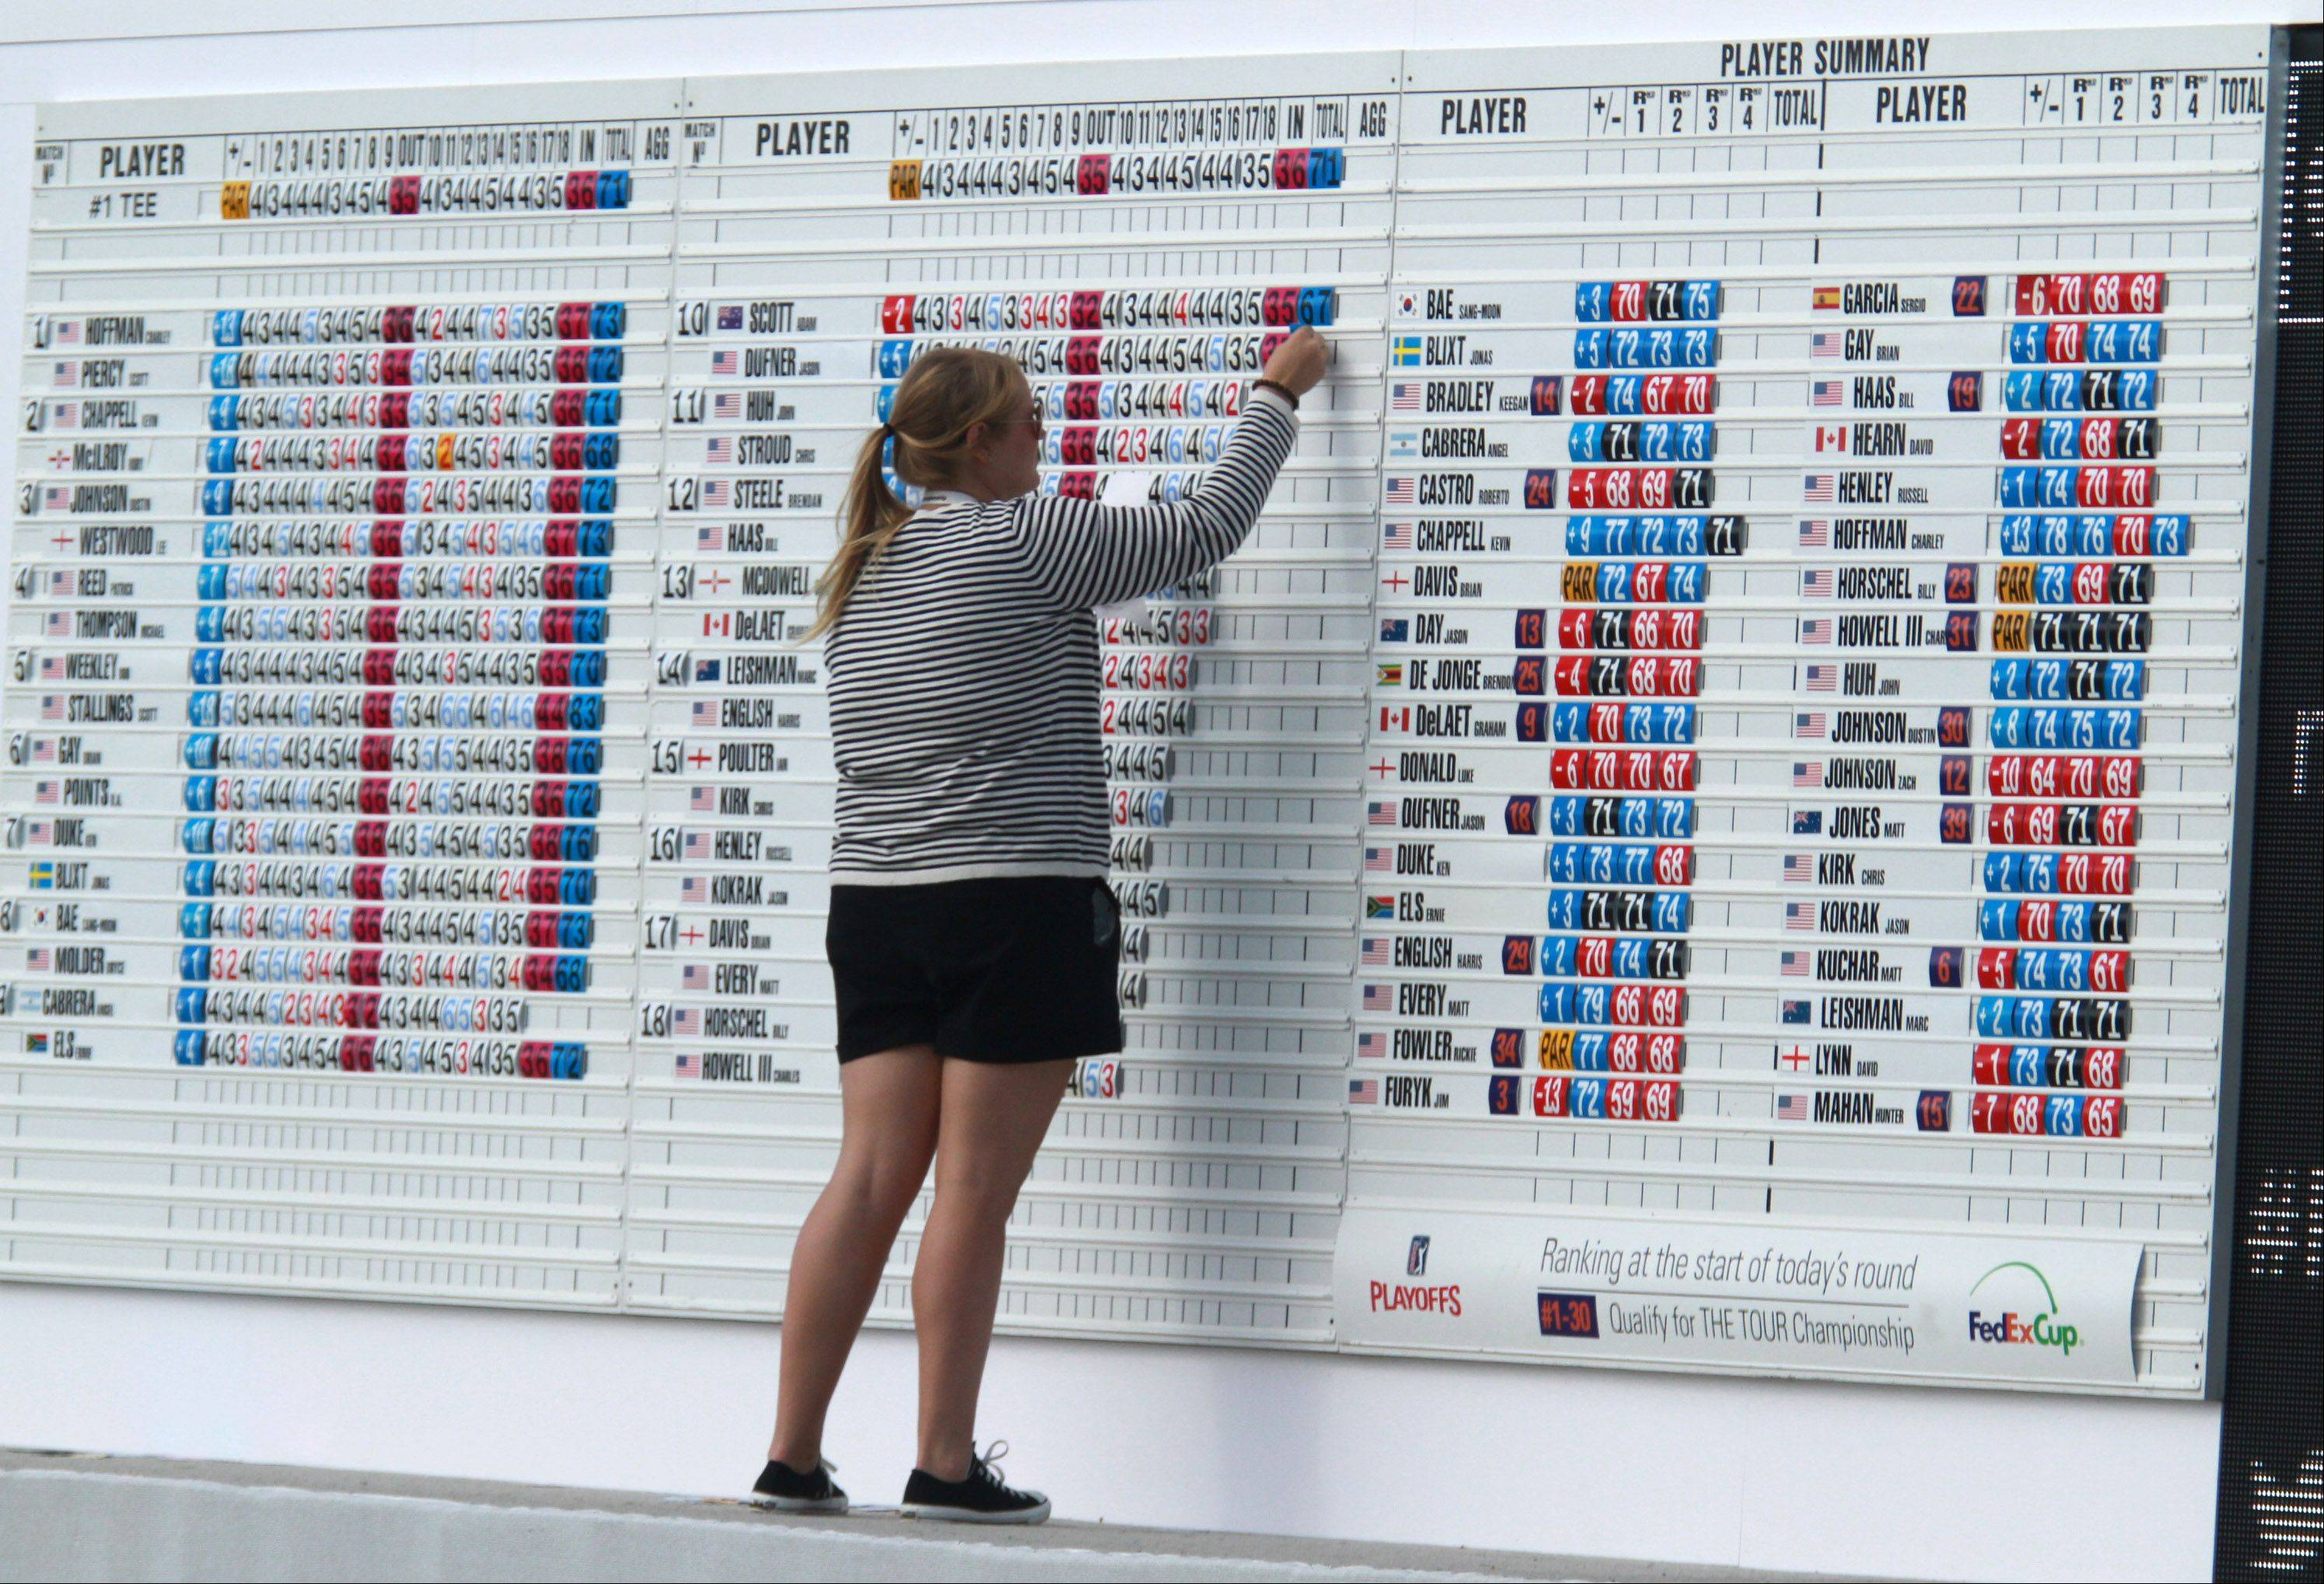 The leader board is shown early on Monday.